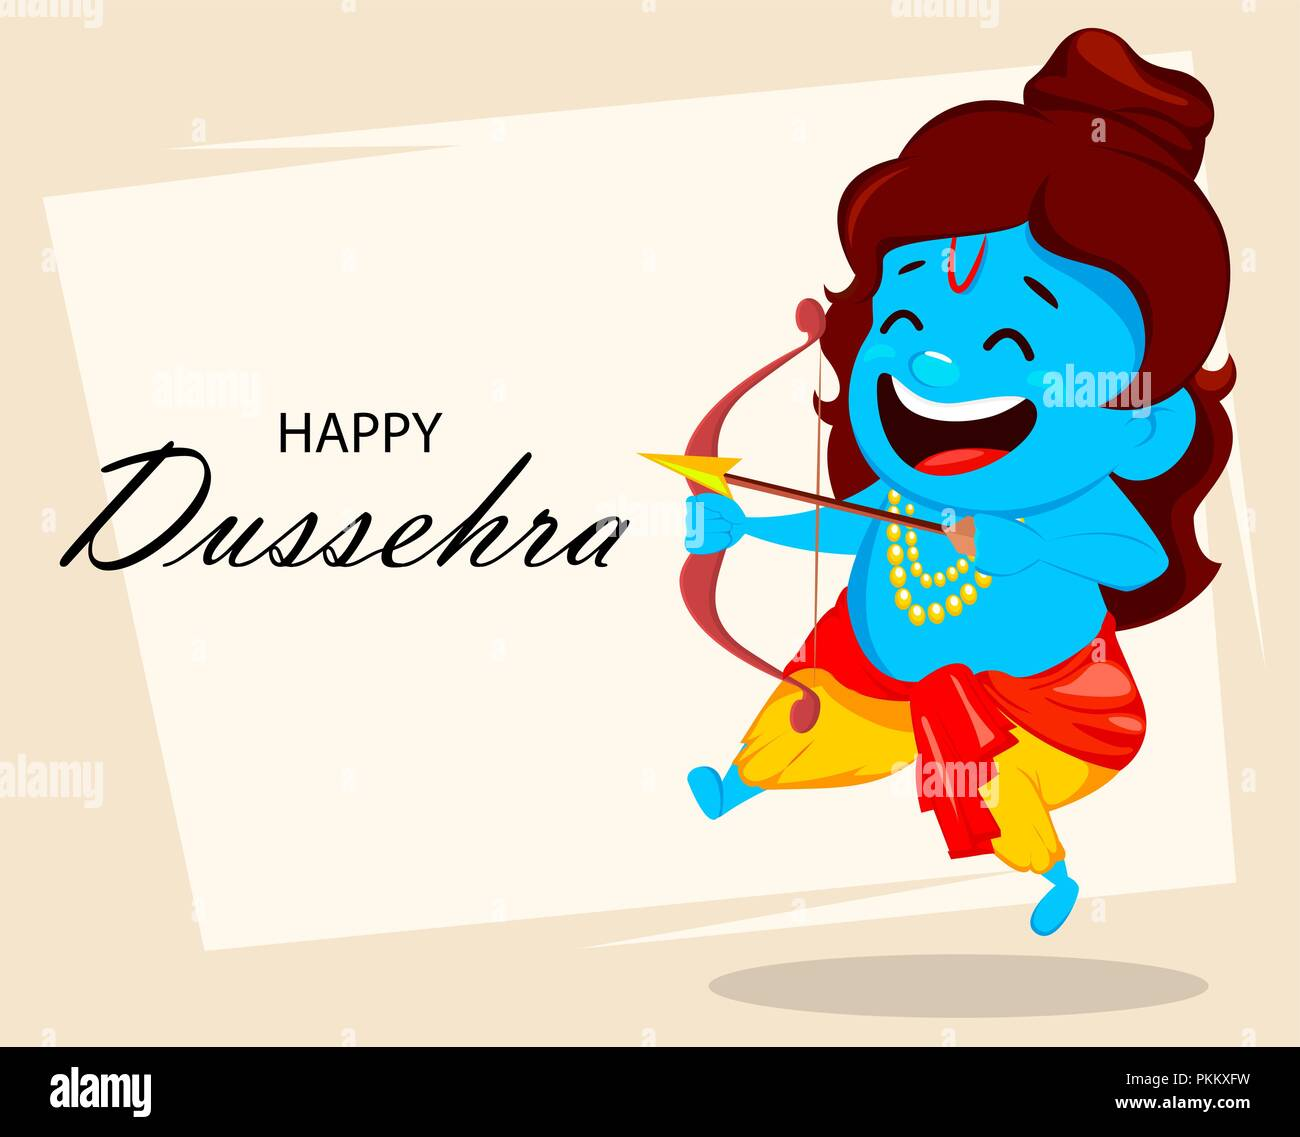 Lord Rama With Bow And Arrow Funny Cartoon Character For Navratri